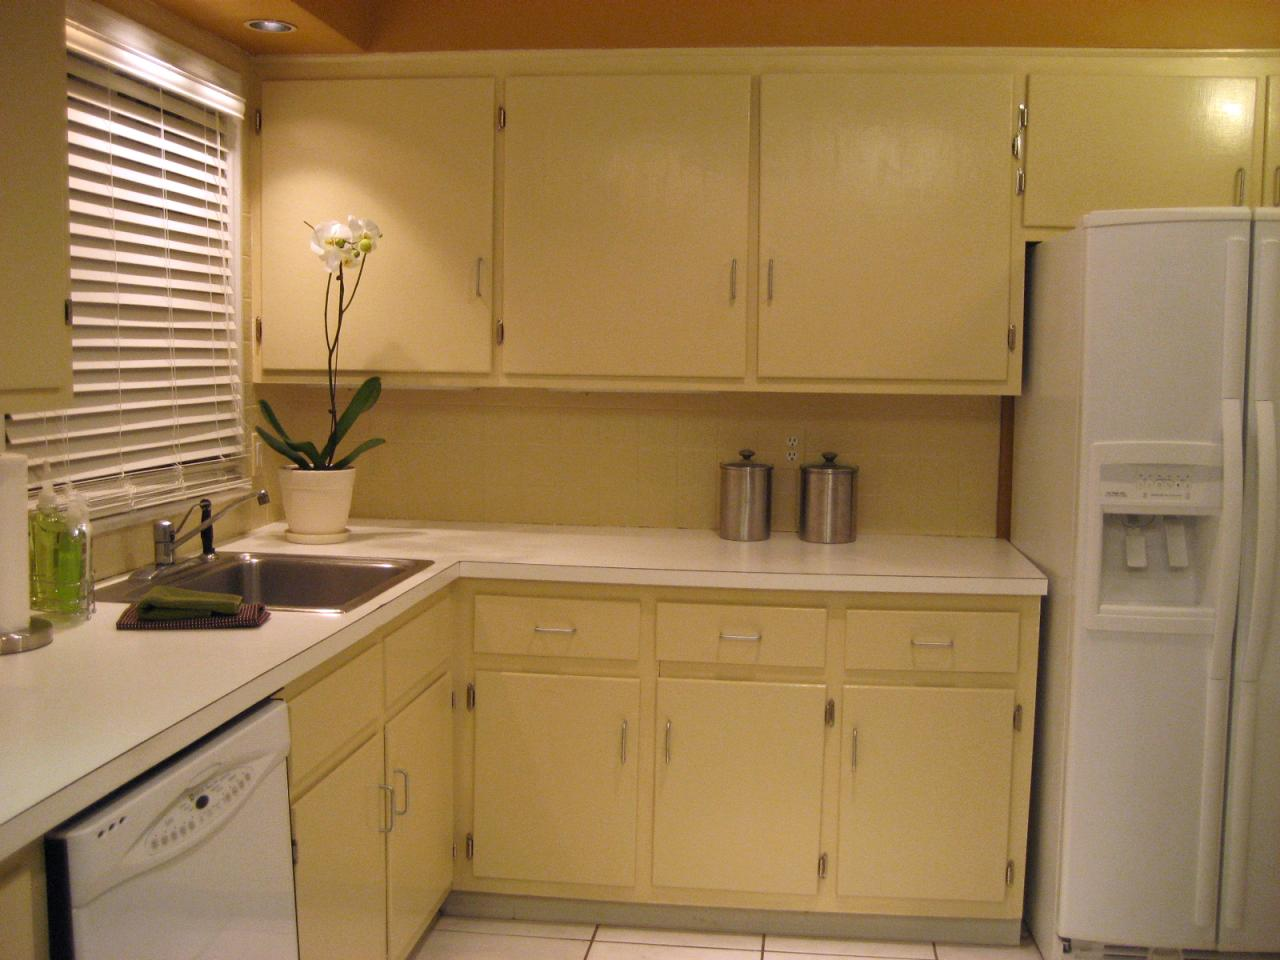 How to paint kitchen cabinets hgtv Pictures of painted cabinets